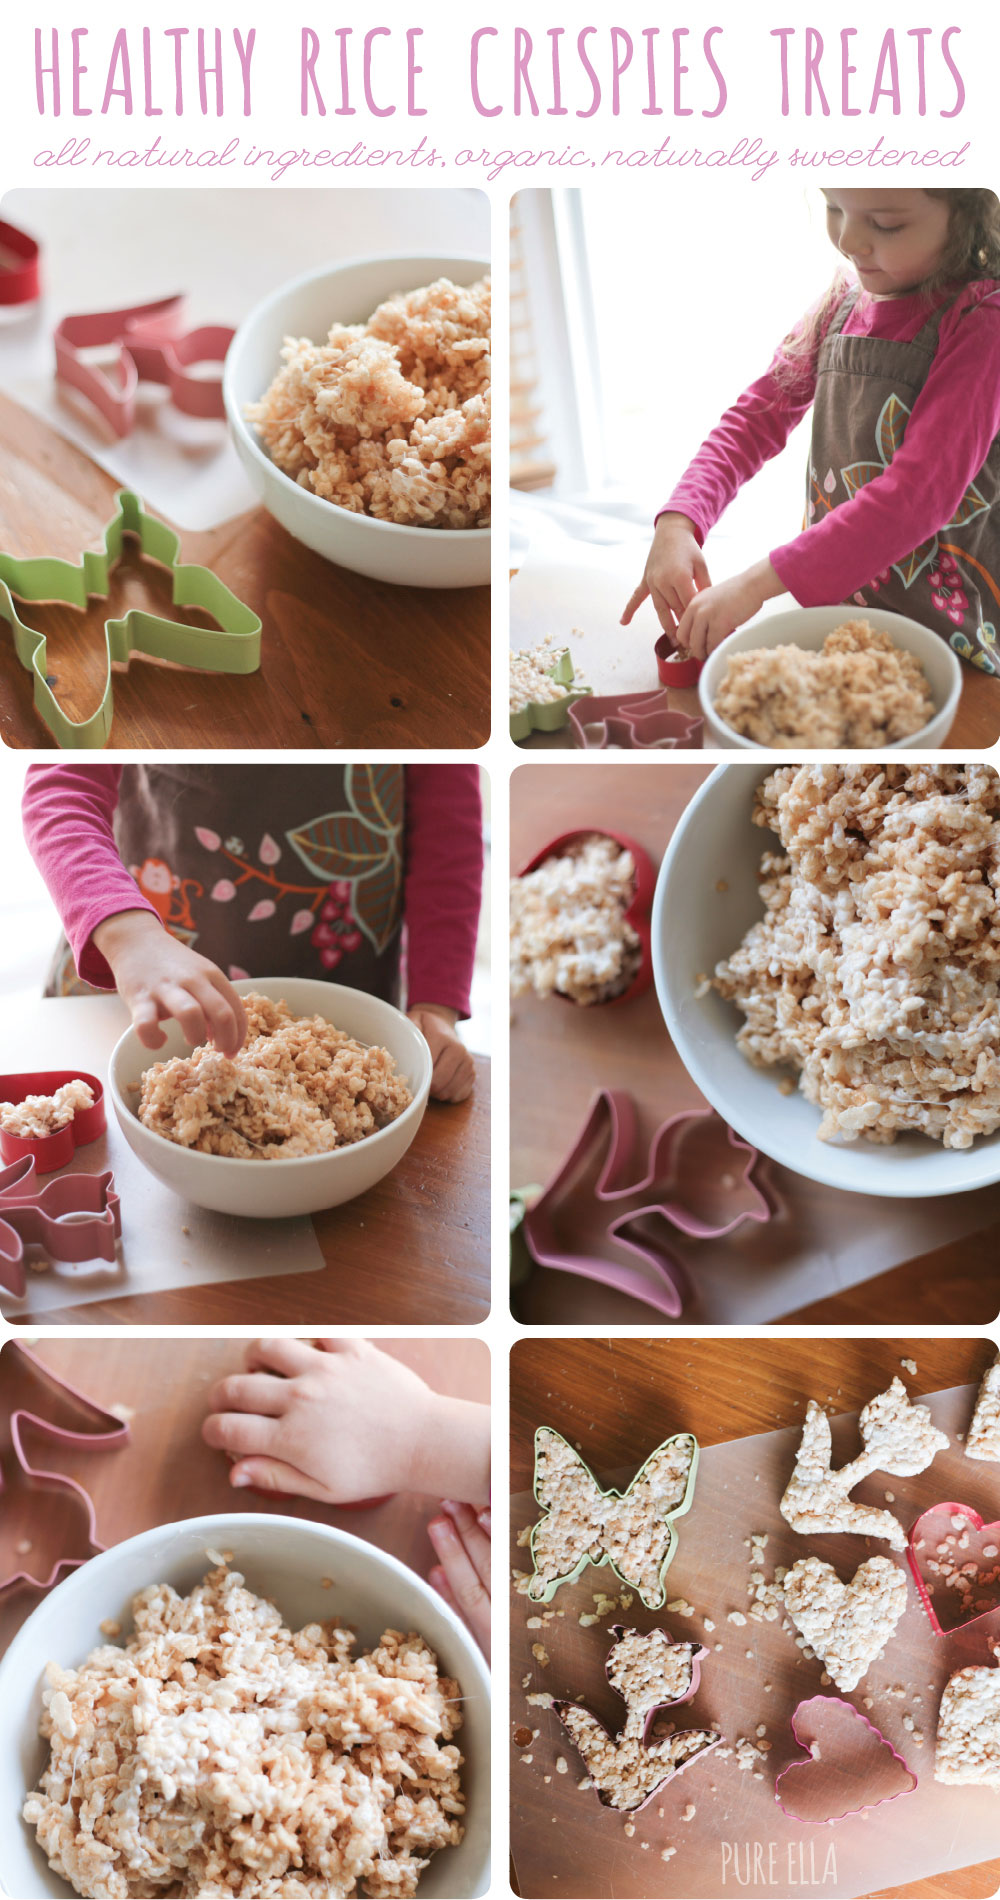 Pure-Ella-Healthy-Rice-Crispies-Treats2